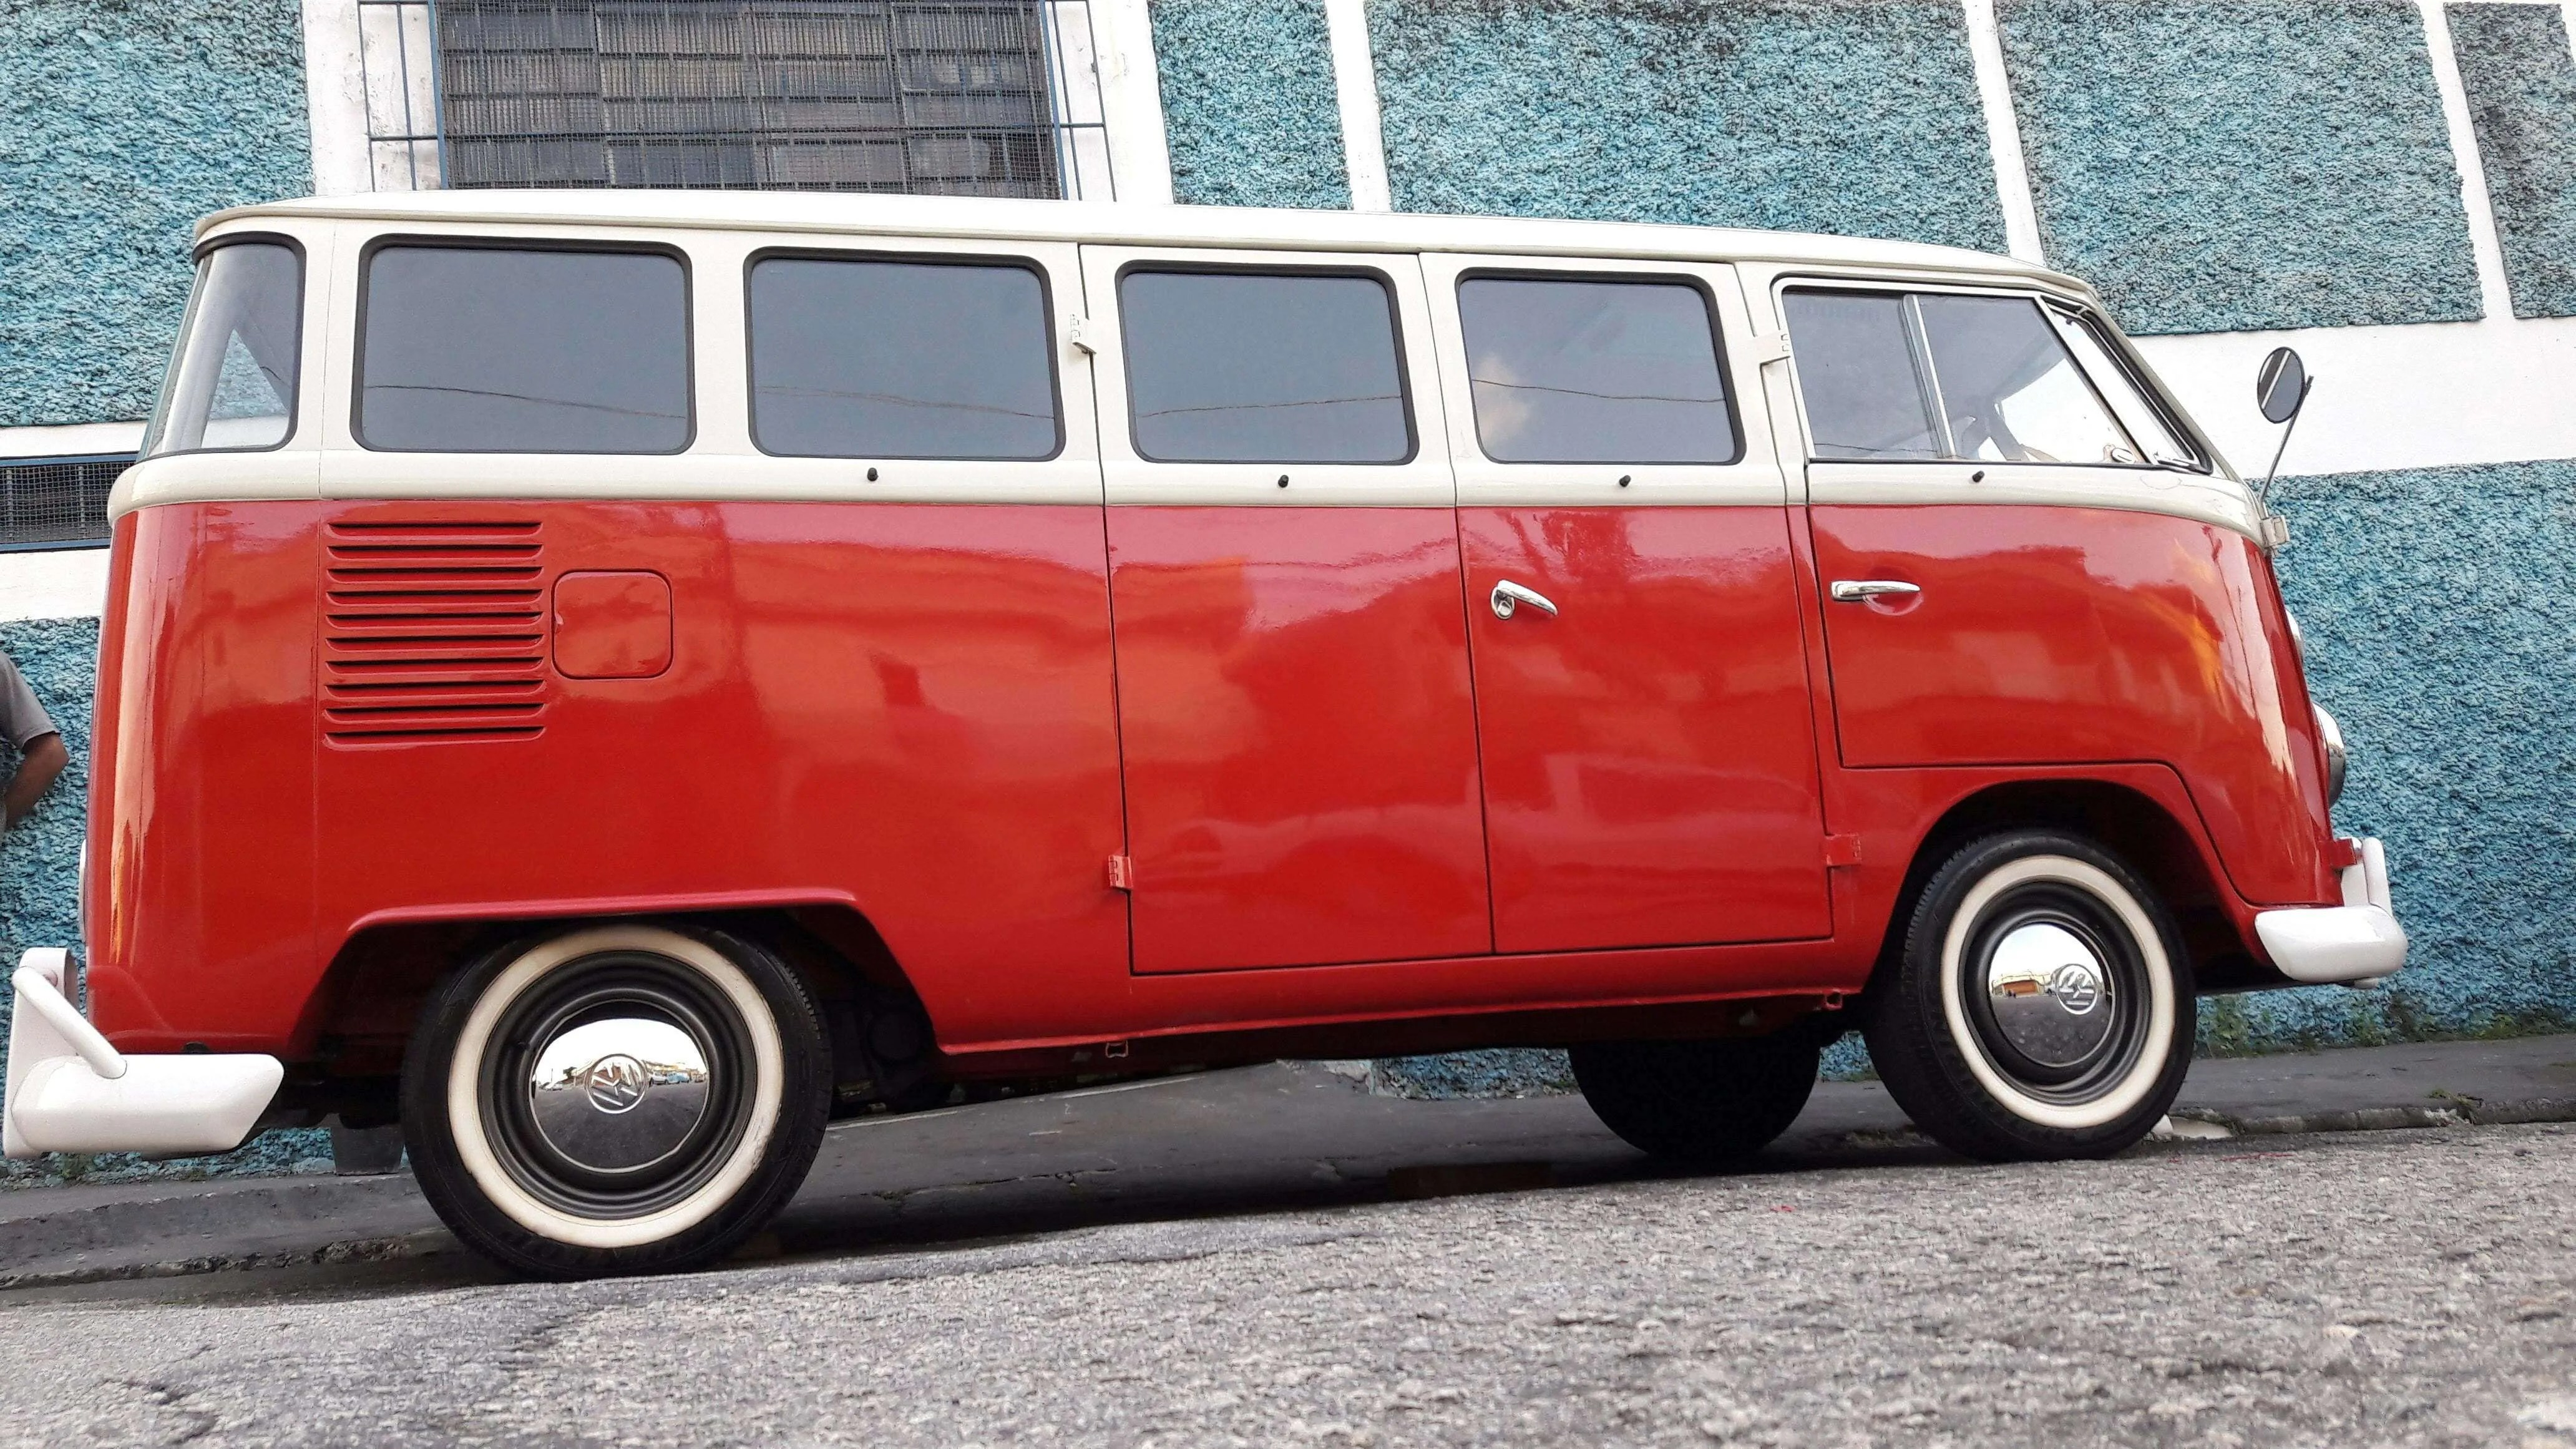 Kombi 1975 – EUR 25.456 – Incl shipping to Rotterdam & taxes paid